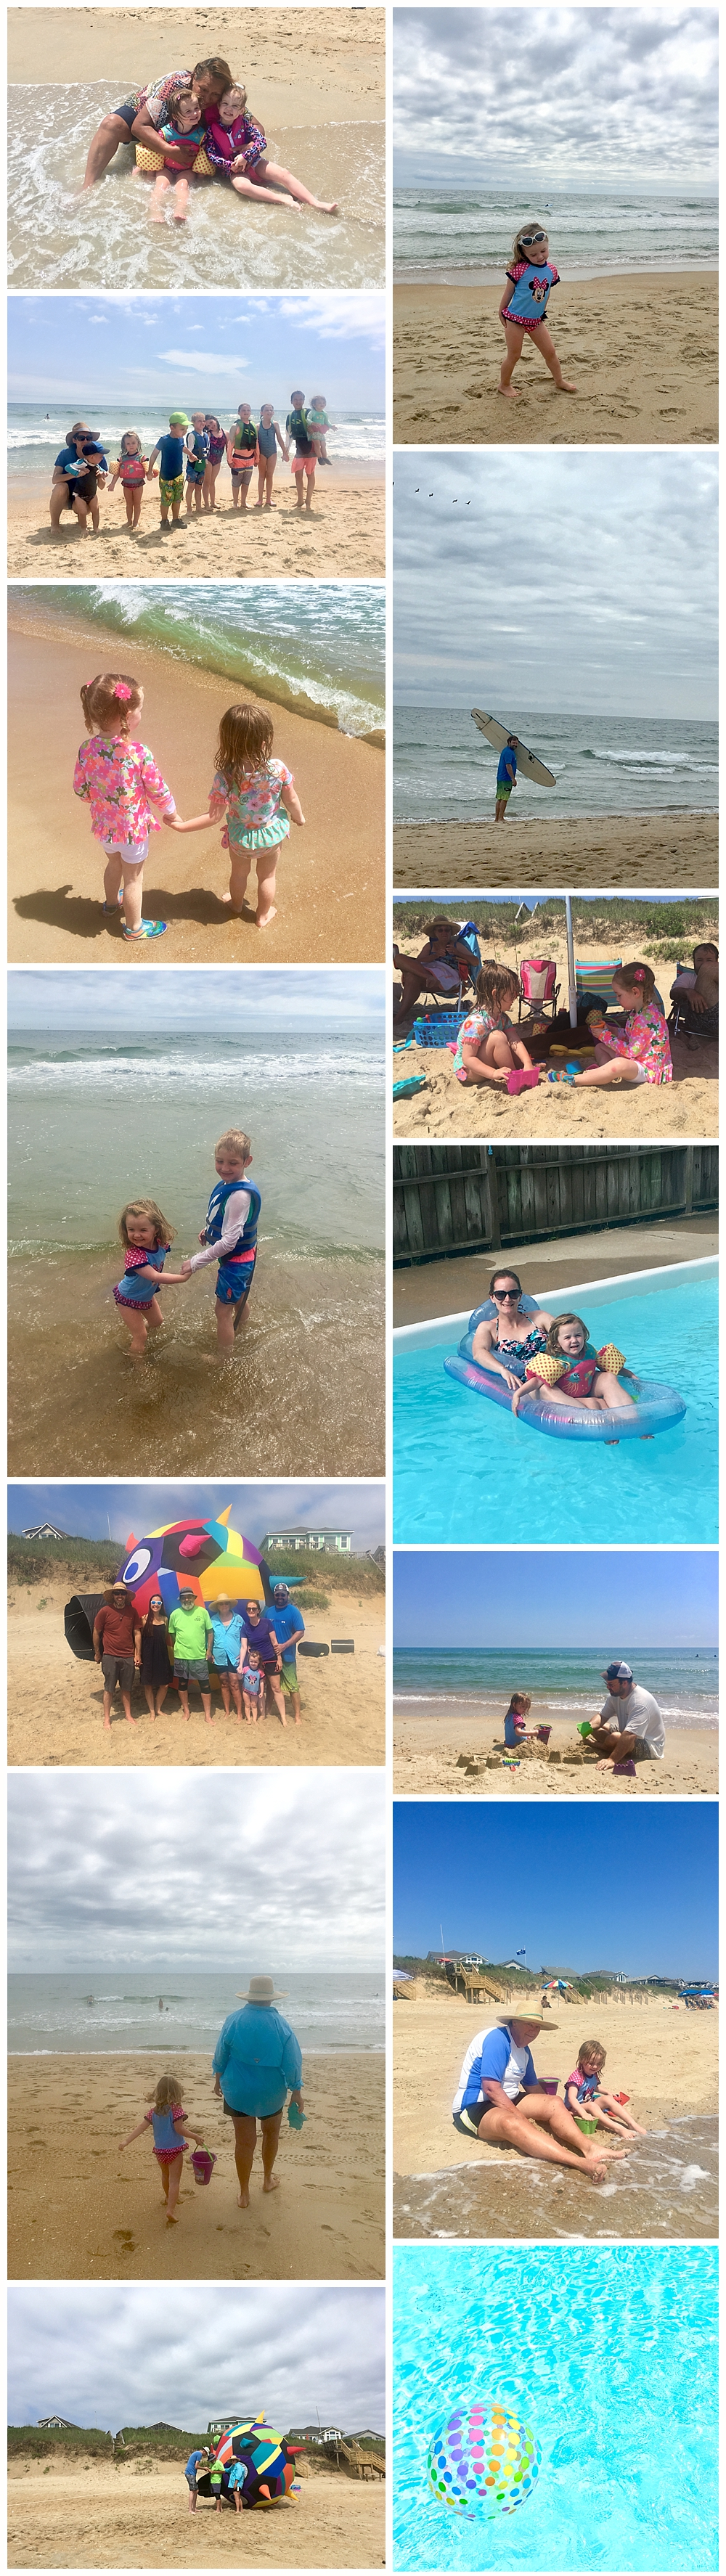 family fun at the beach in Duck, NC